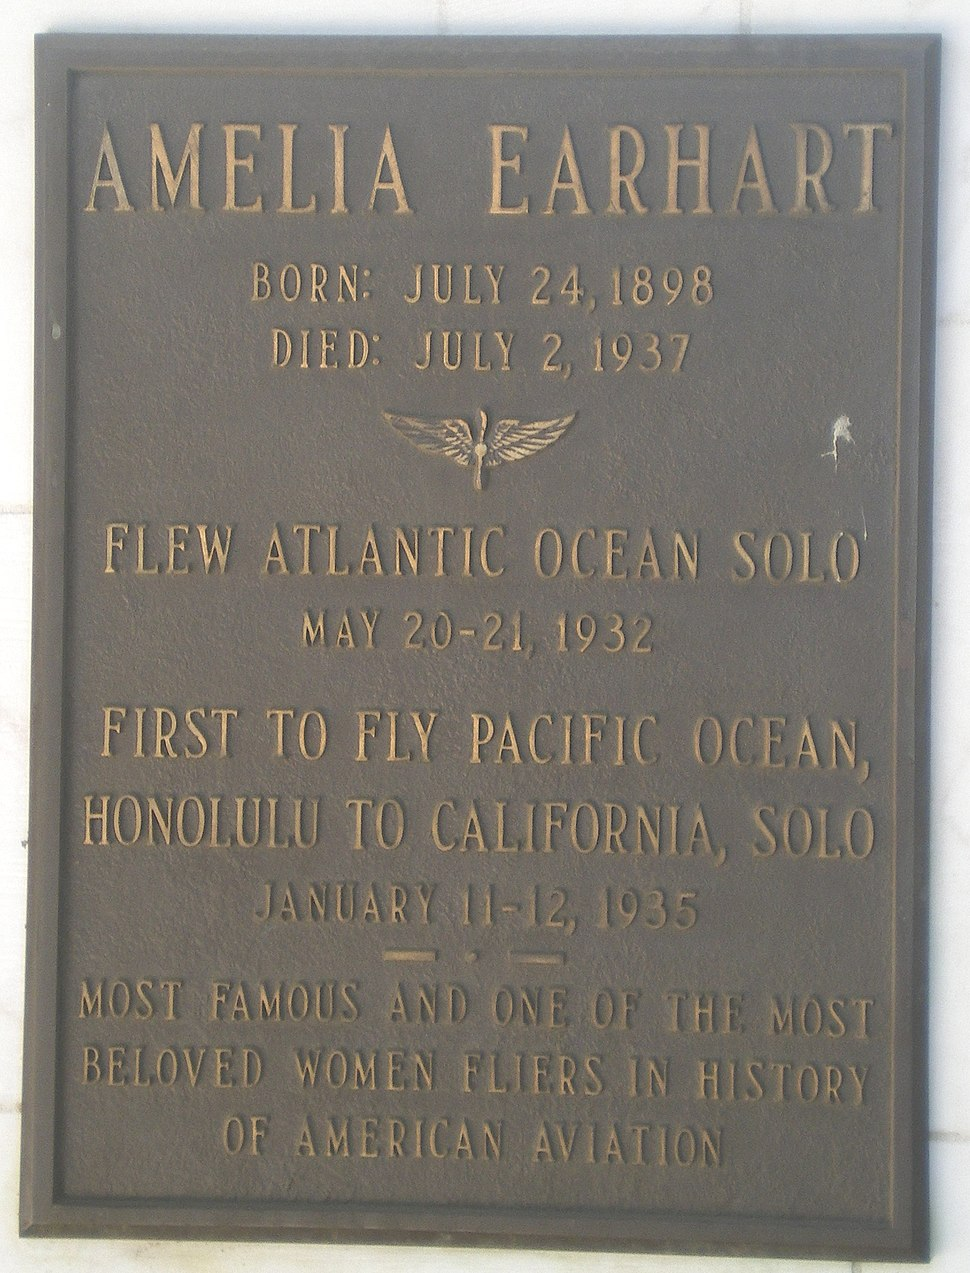 Amelia Earhart Plaque at Portal of the Folded Wings